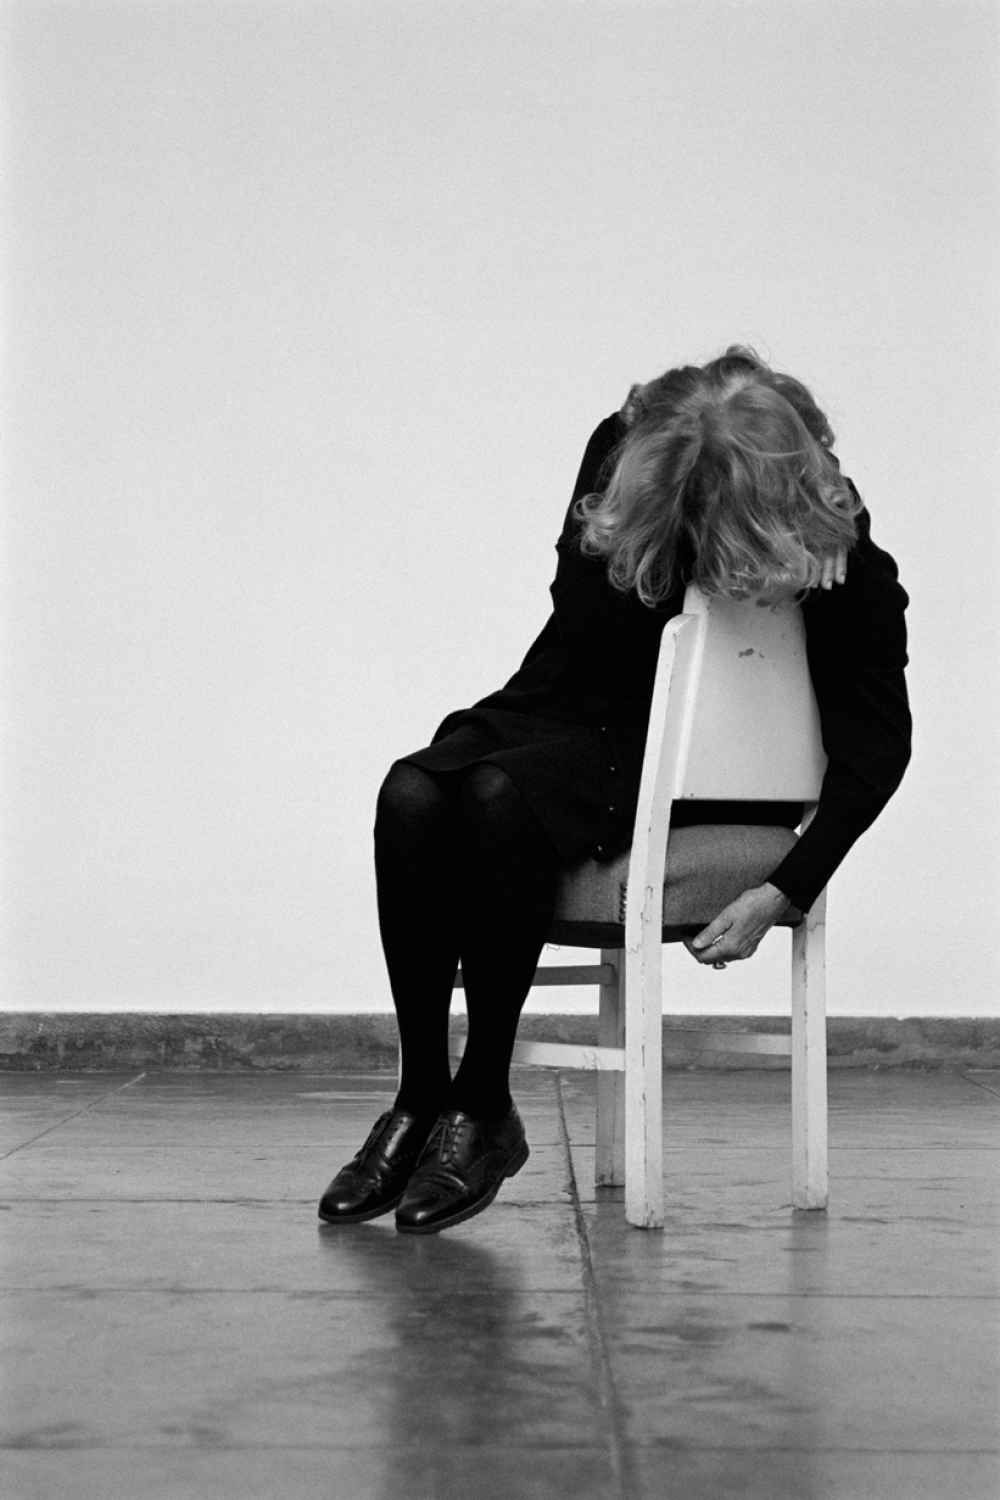 Black and white chair photography - Helena Almeida A Cadeira Branca The White Chair 2013 Source